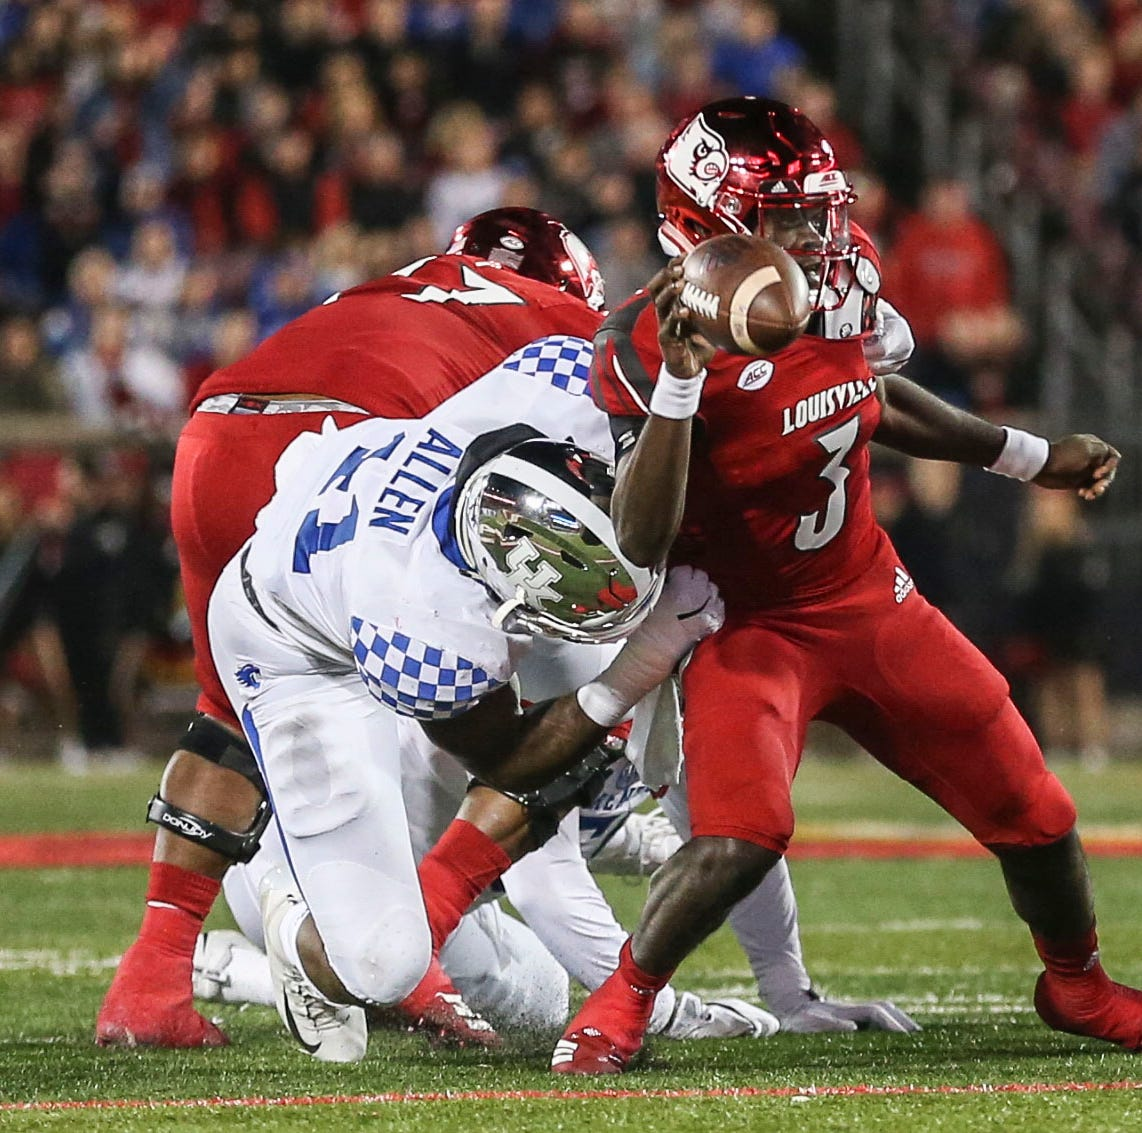 Kentucky football places multiple players on AP All-American squad